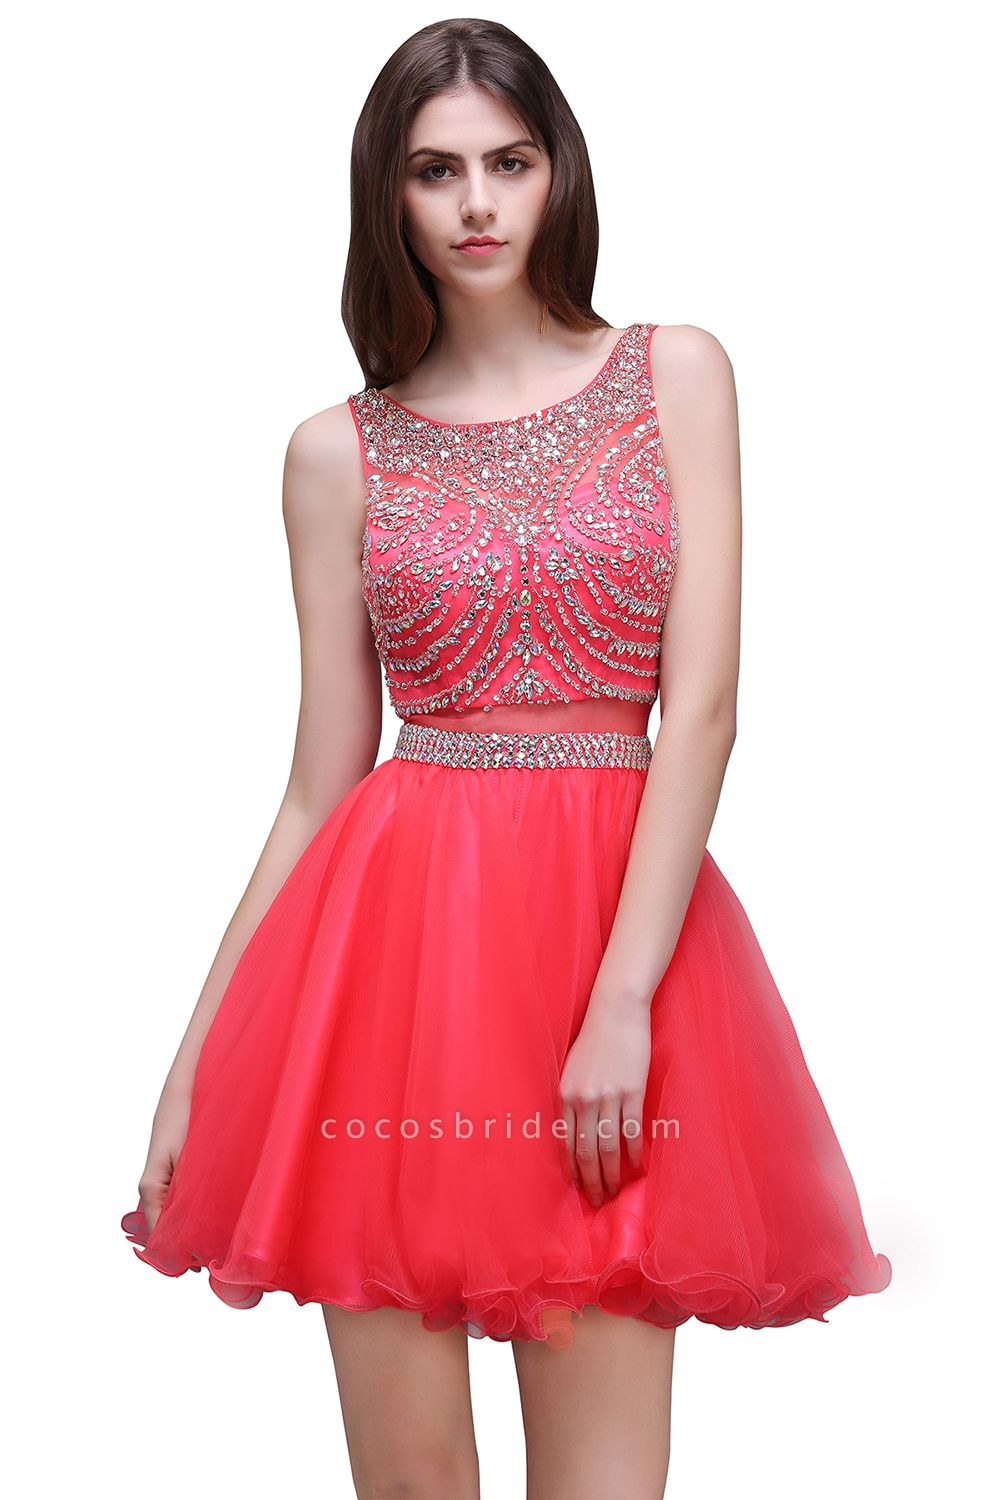 BIANCA | Puffy Straps Short Tulle Homecoming Dresses With Crystal